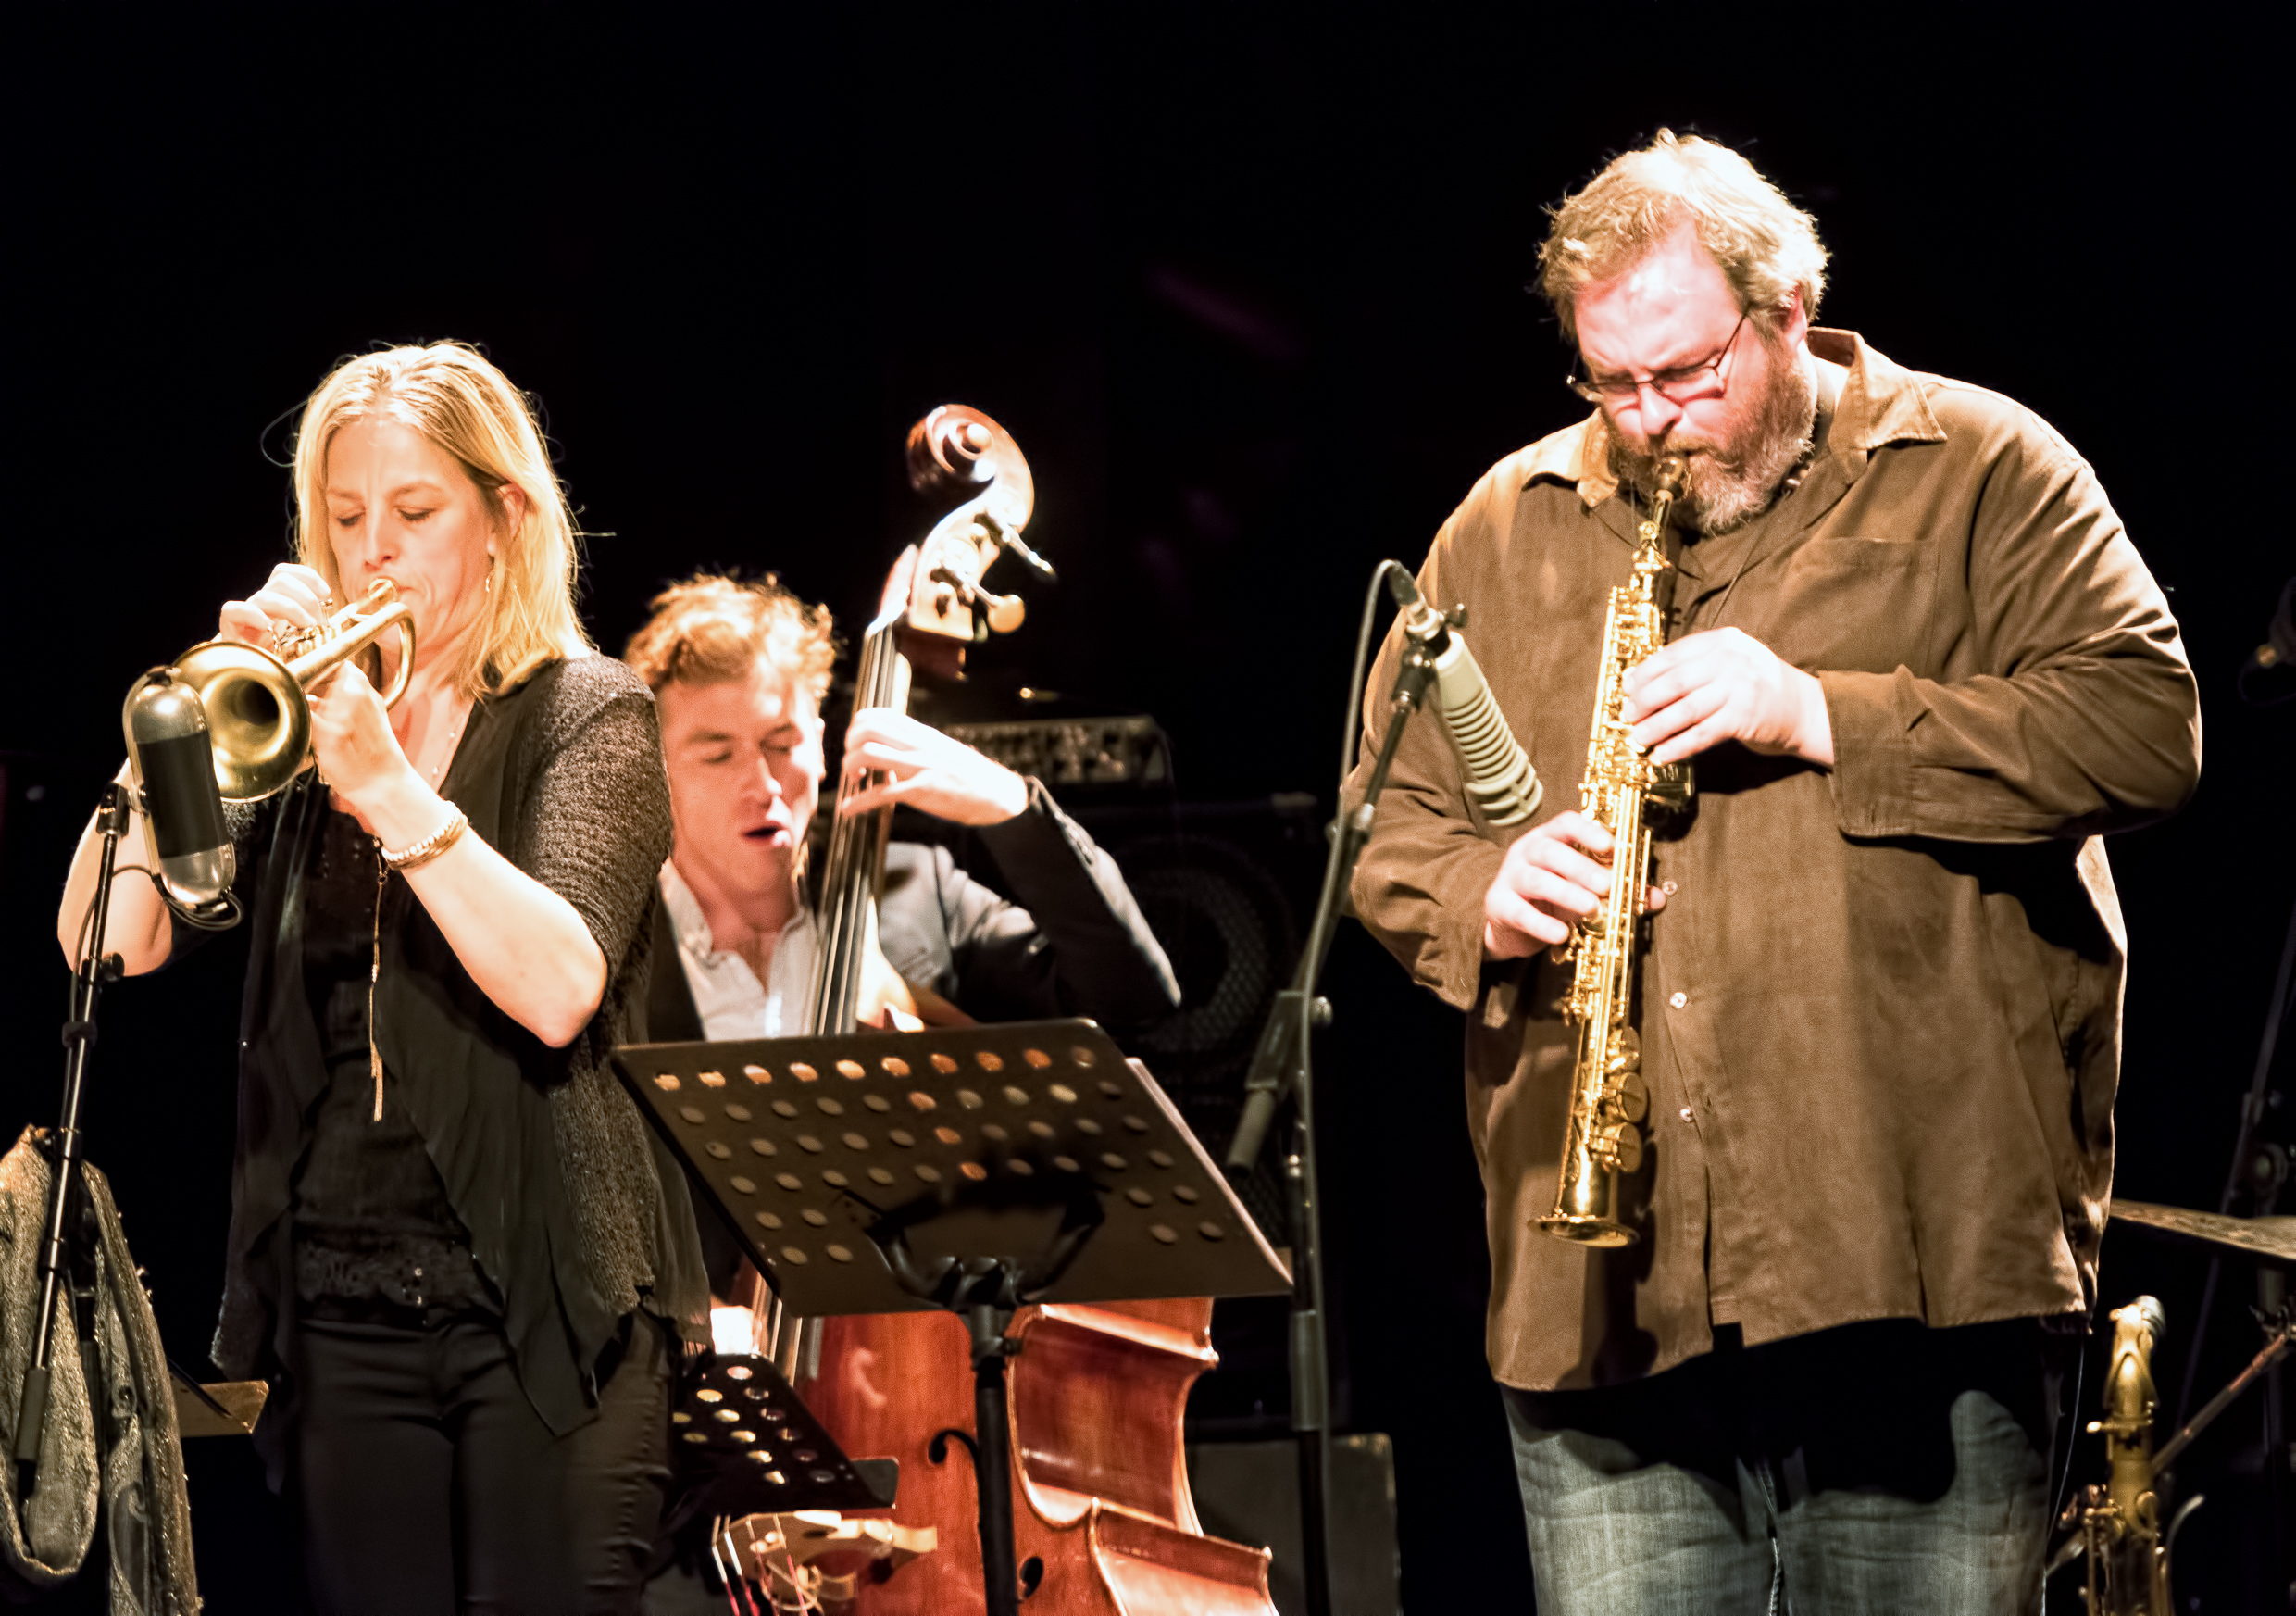 Ingrid Jensen, Remi-Jean Leblanc and Jonathan Stewart with Marianne Trudel at the Montreal International Jazz Festival 2015